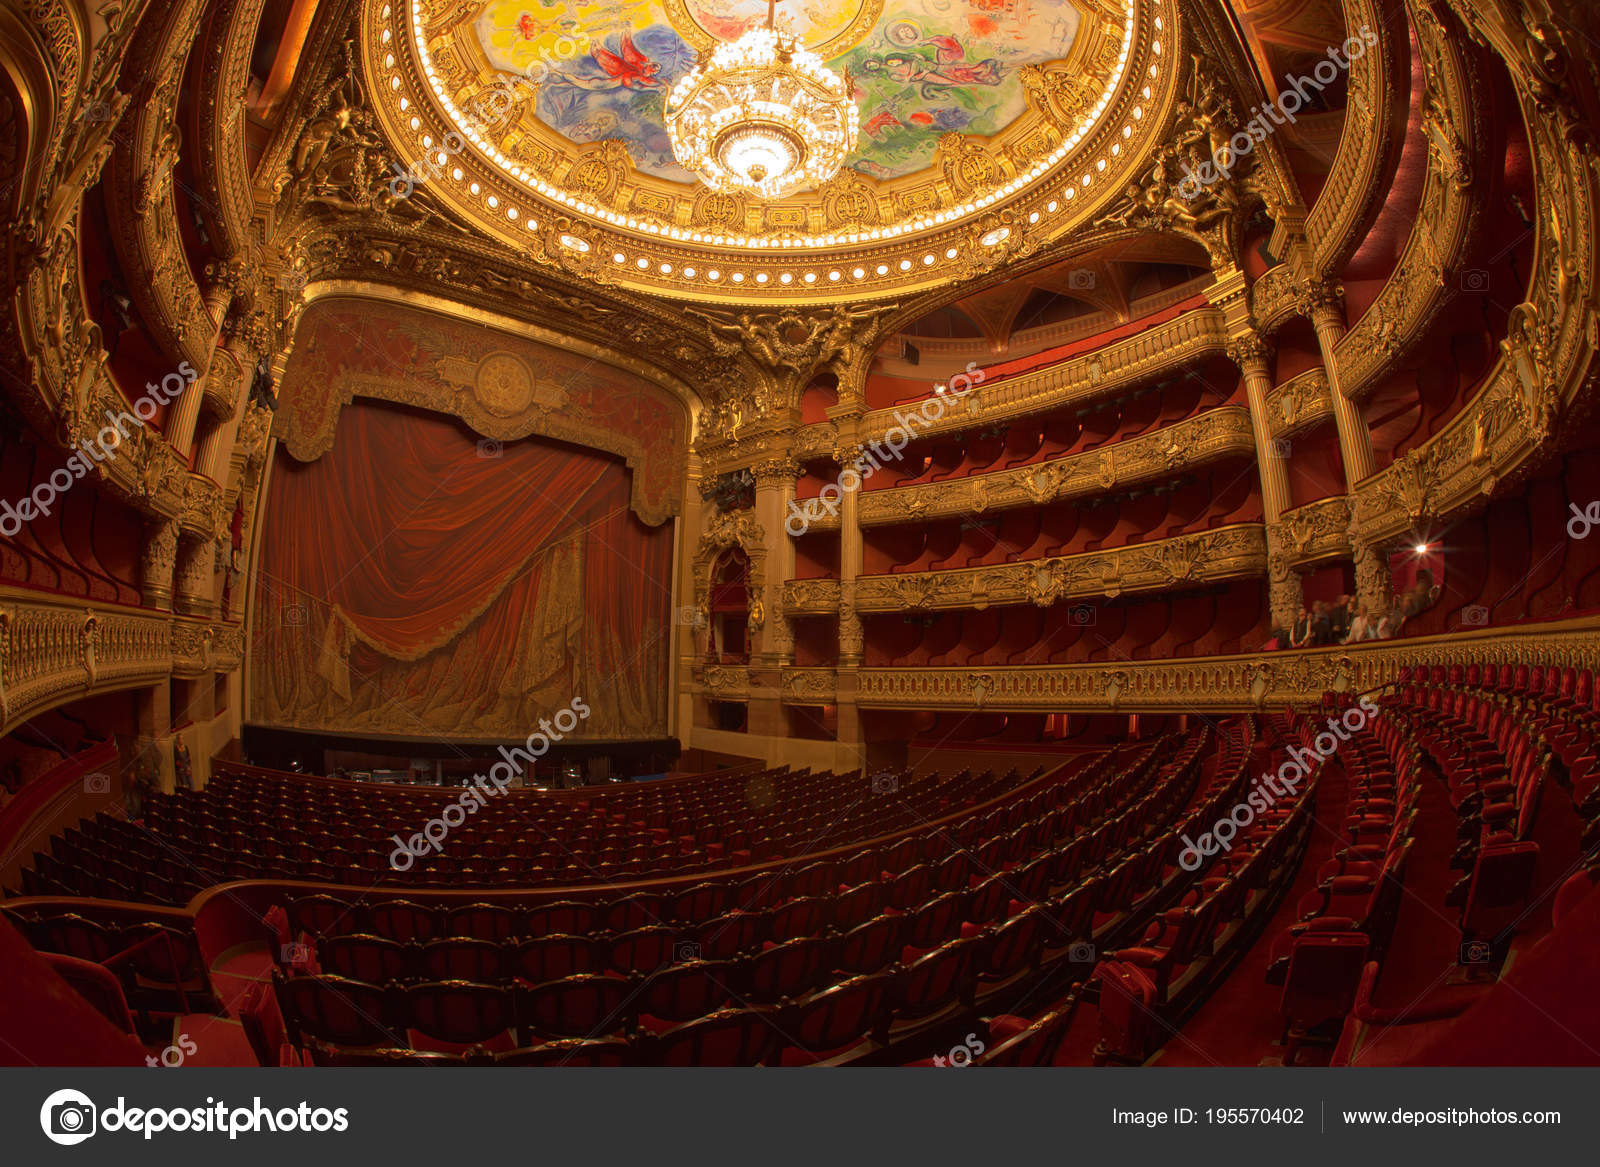 Paris france october 2017 auditorium inside of the palais depositphotos195570402 stock photo paris france october 2017 auditoriumg aloadofball Images